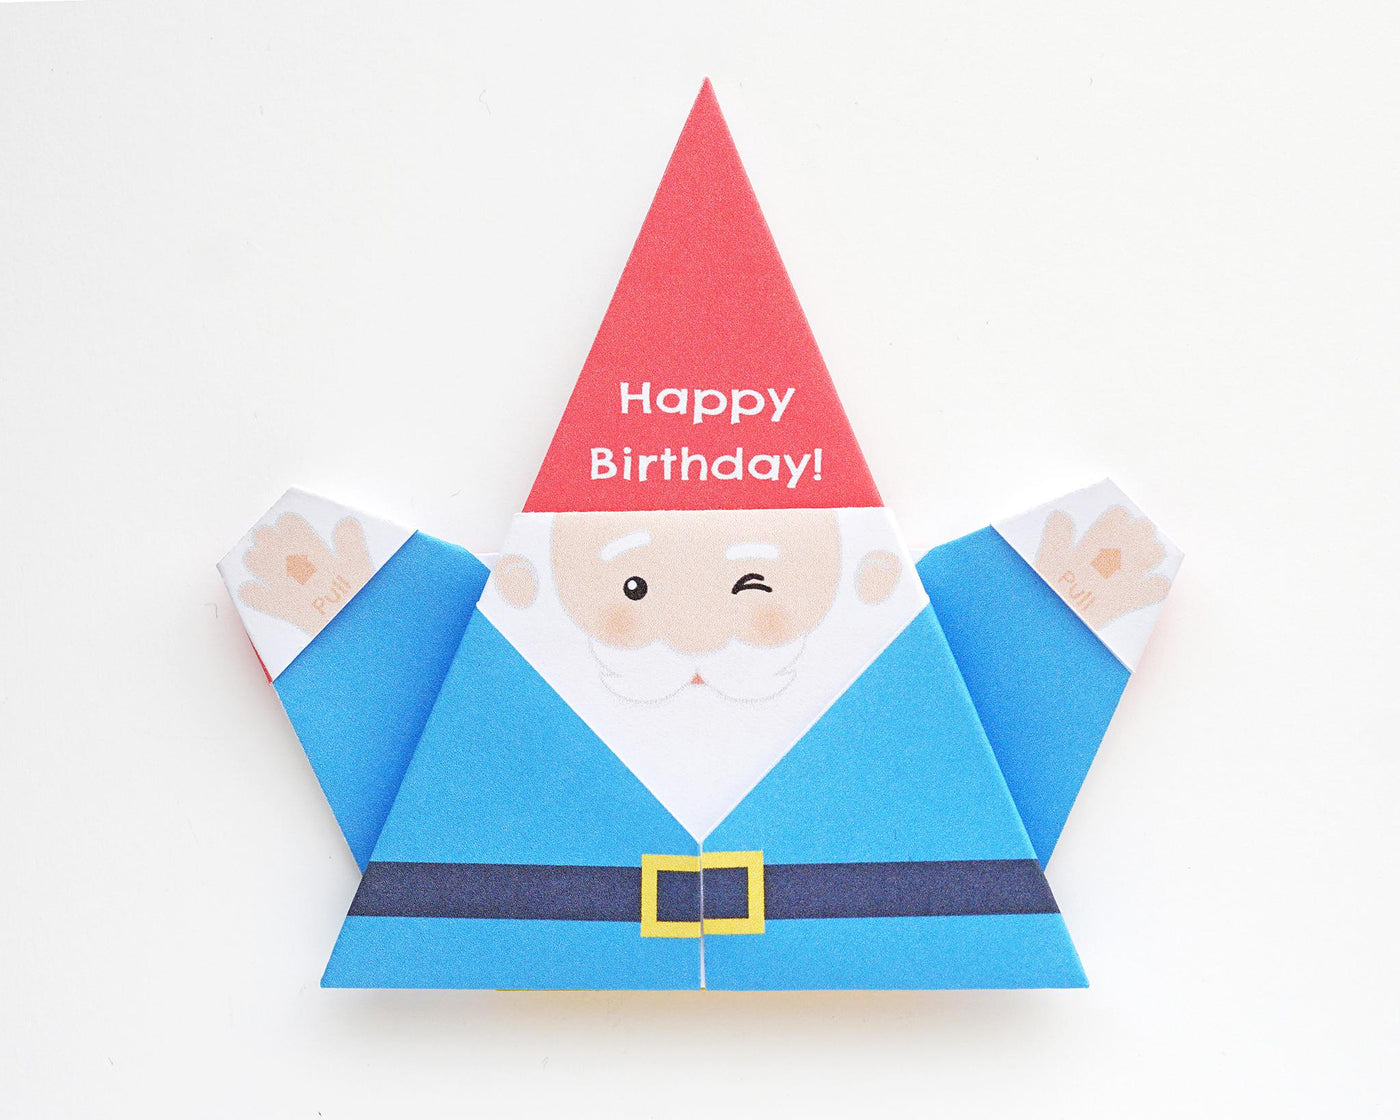 Printable DIY Origami Gnome Card - Happy Birthday Design